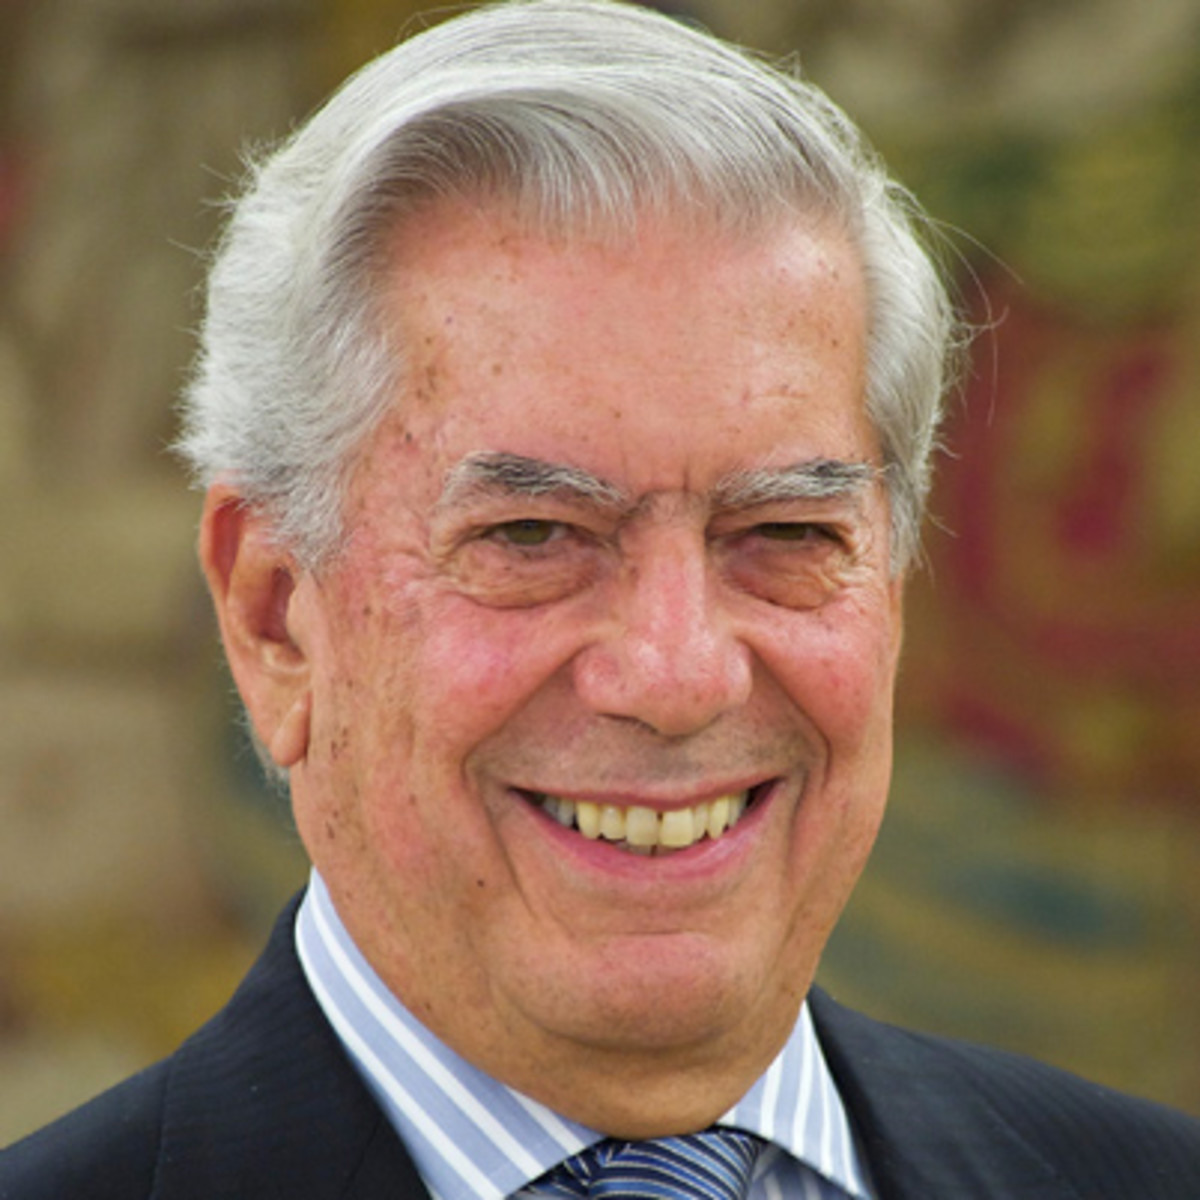 Vargas Llosa Libros Mario Vargas Llosa Author Biography